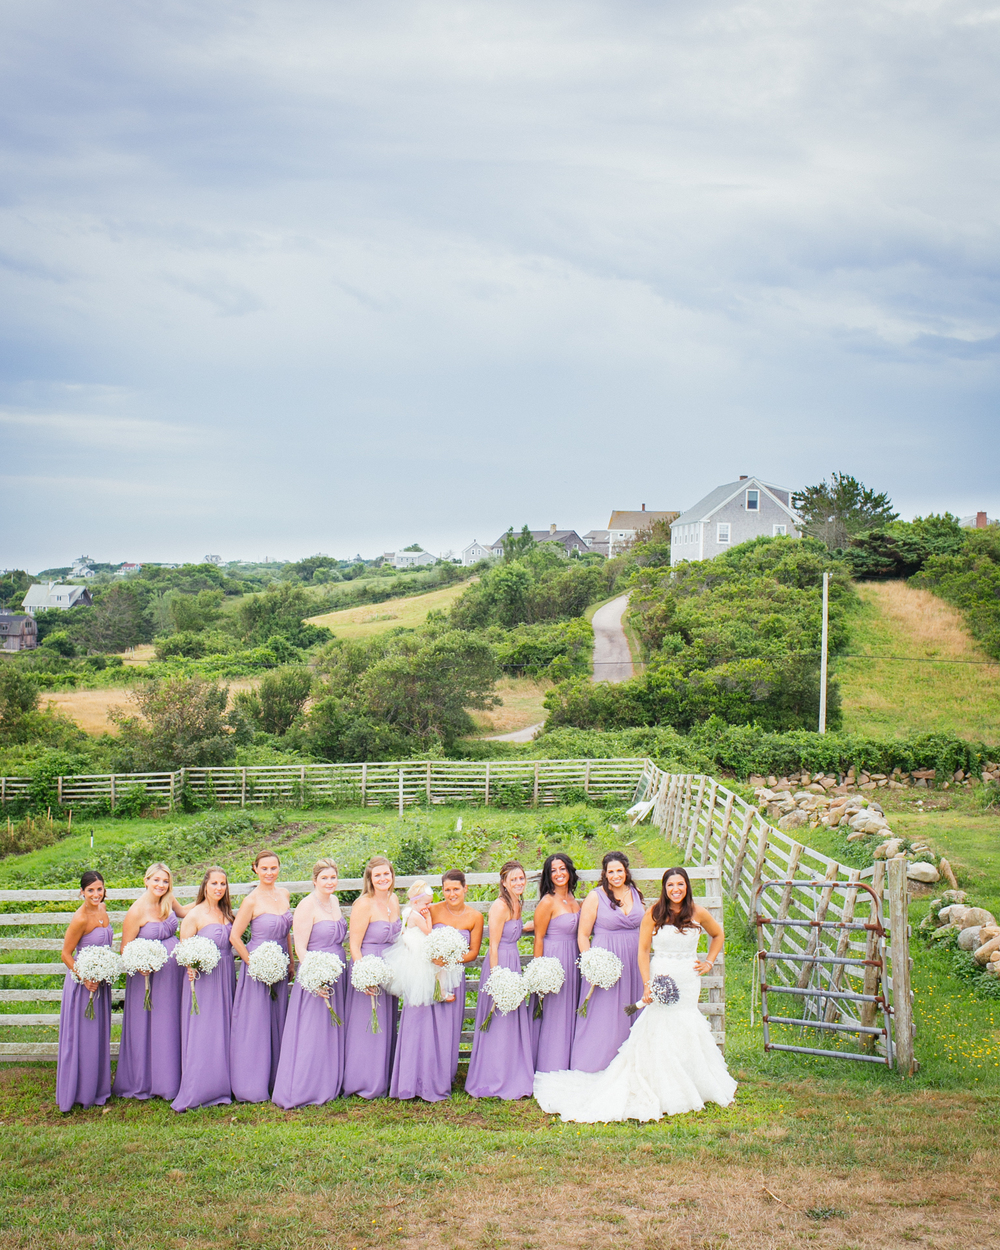 The bride and her bridesmaids outdoors before the ceremony